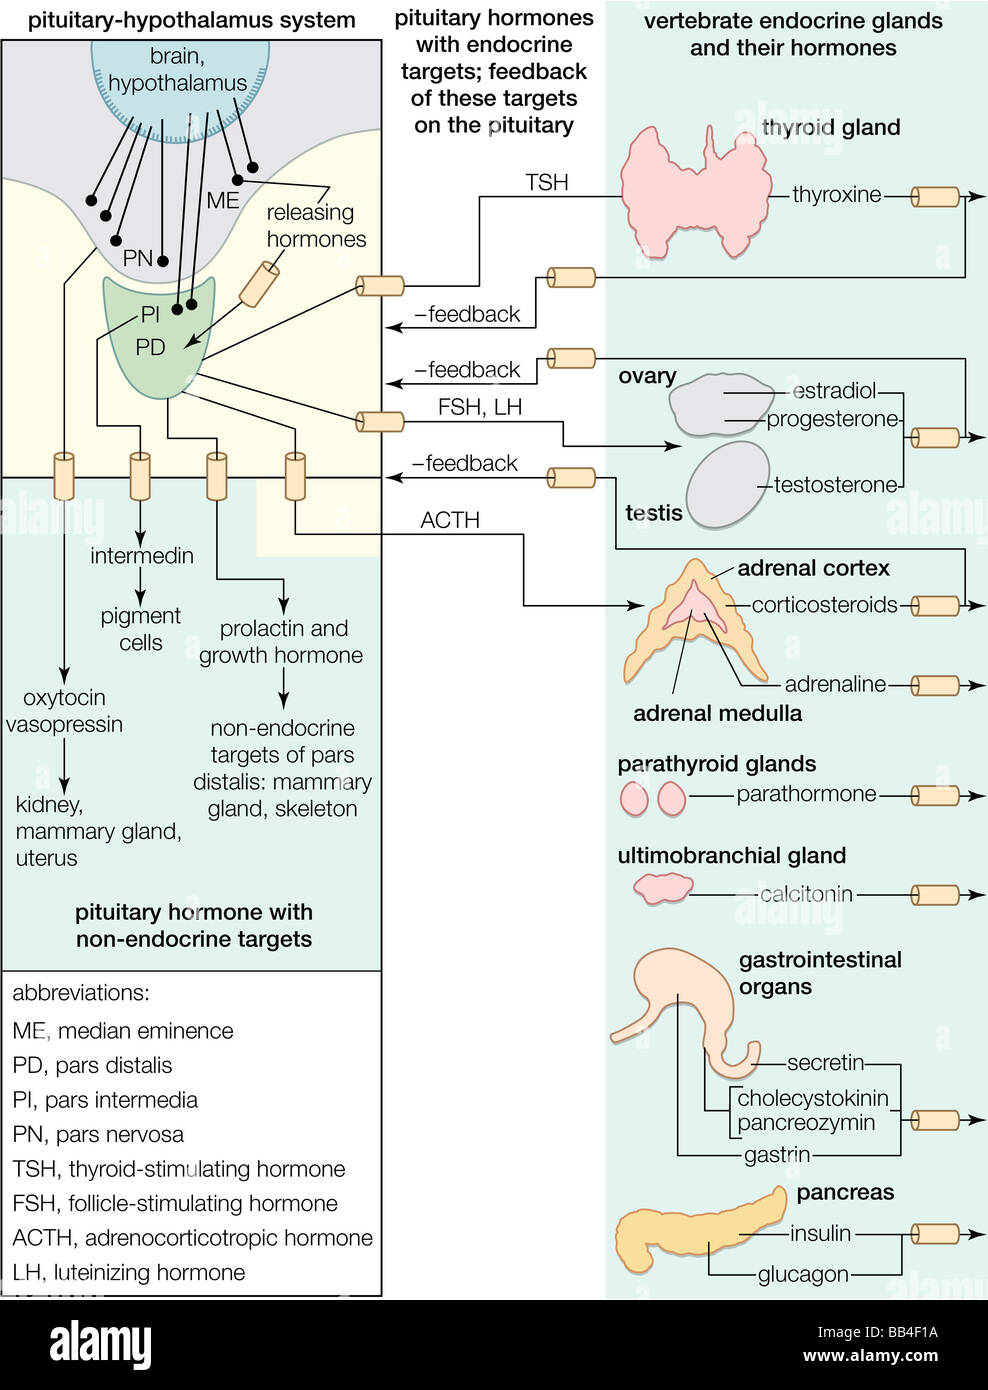 Relationships of endocrine glands, from the pituitary-hypothalamus ...